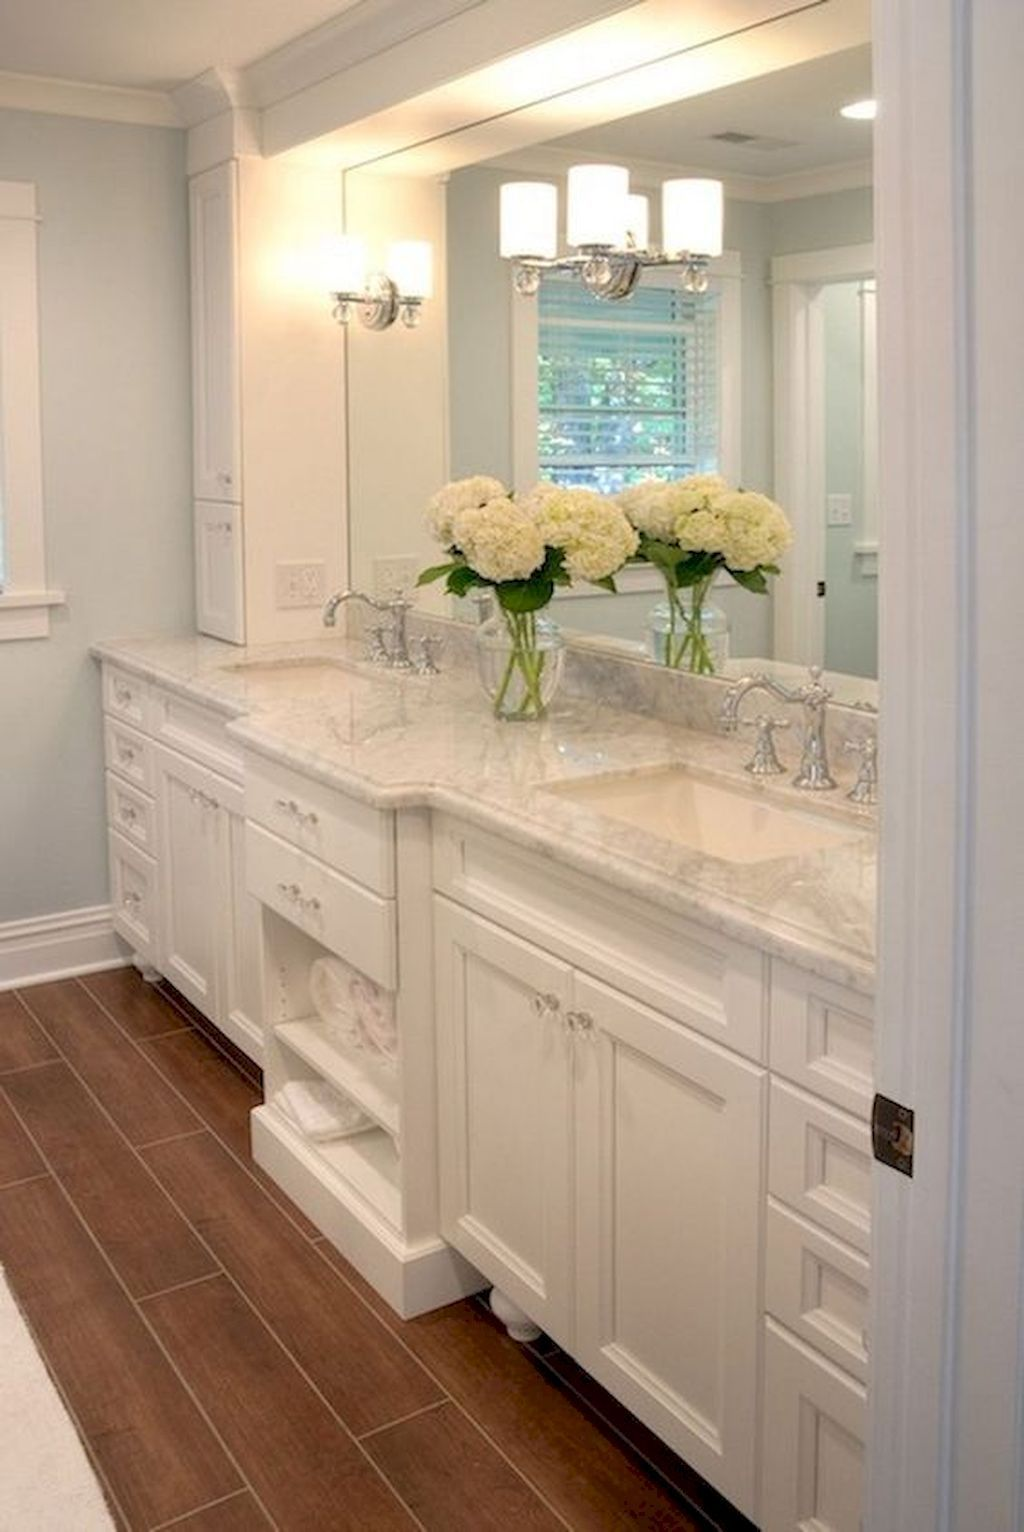 09 Beautiful Master Bathroom Remodel Ideas With Images